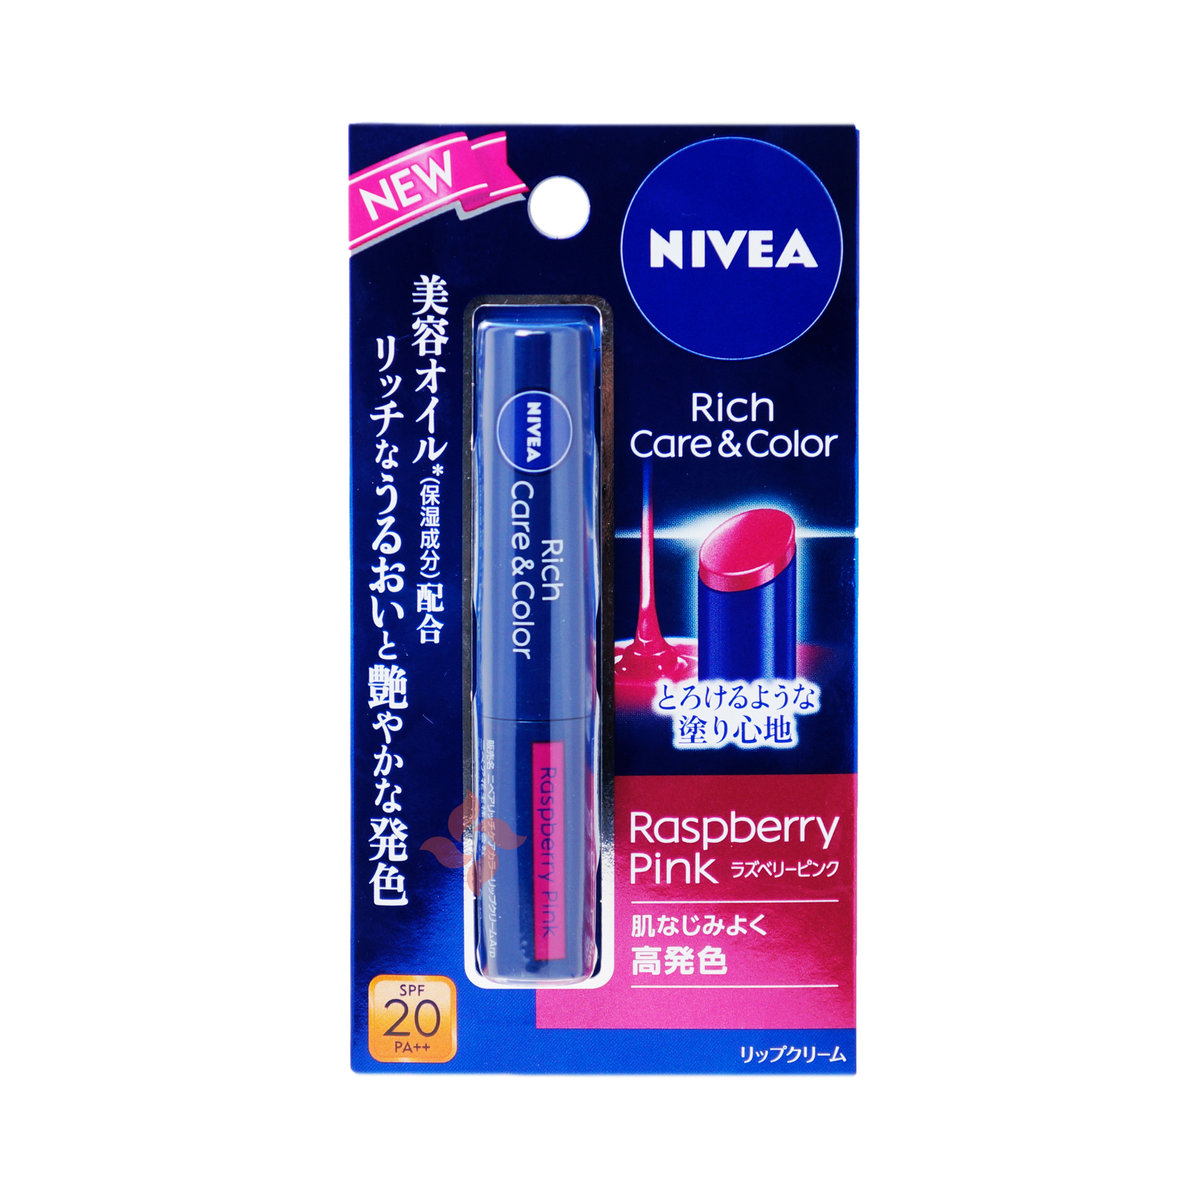 Rich Care & Color Lip SPF20 PA++ 2g (Raspberry Pink) (4901301355560)